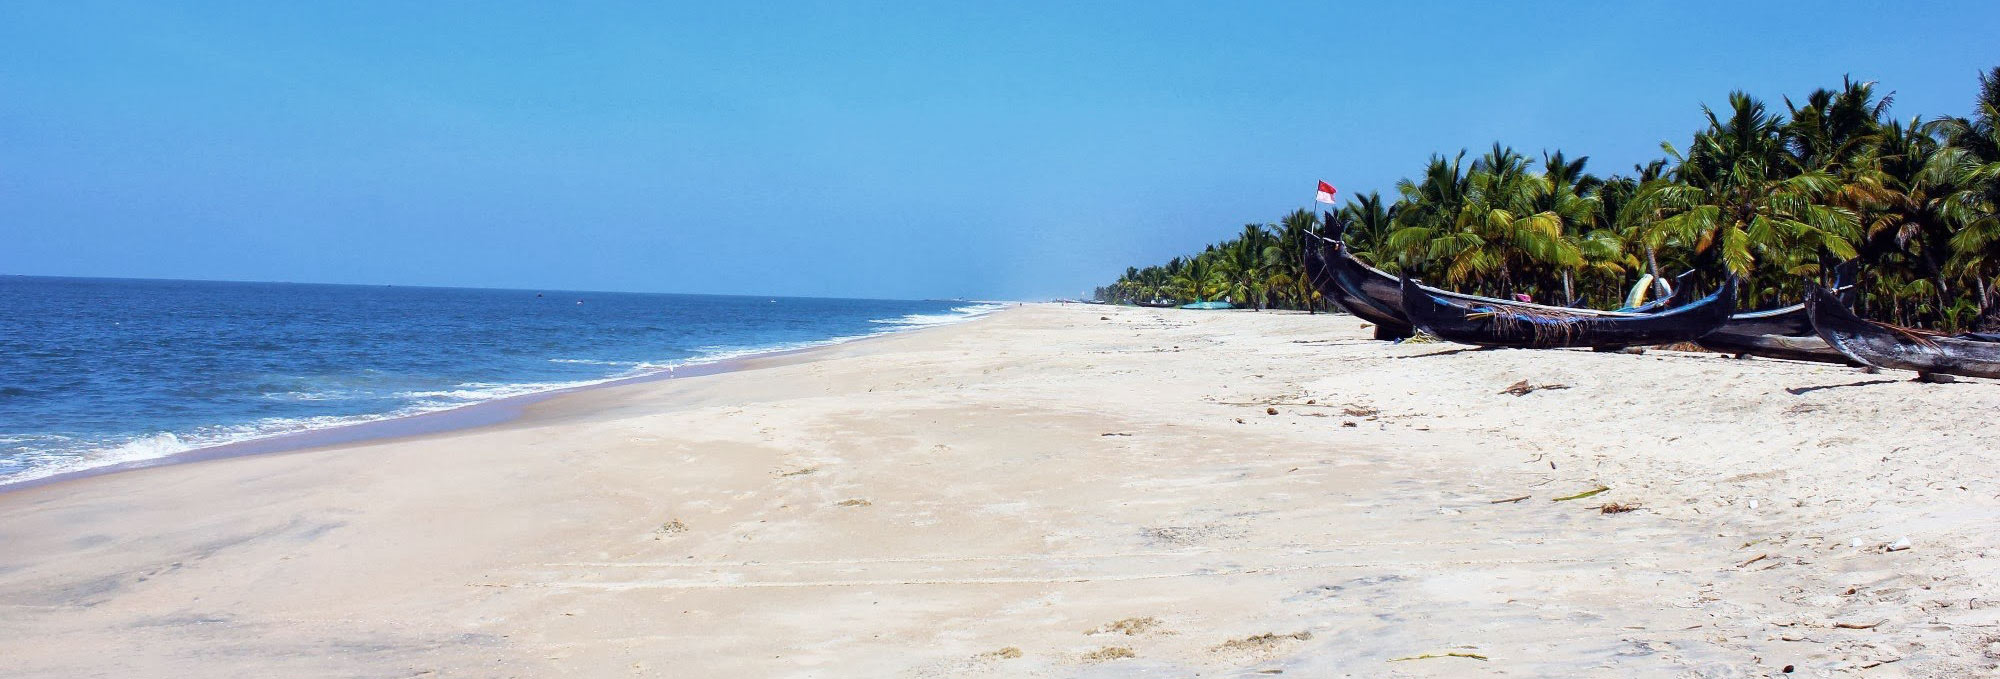 Marari Austin Beach Villa S Home Stay And Are In The Banks Of Arabian Sea Kerala Is A Lovely Place To Visit